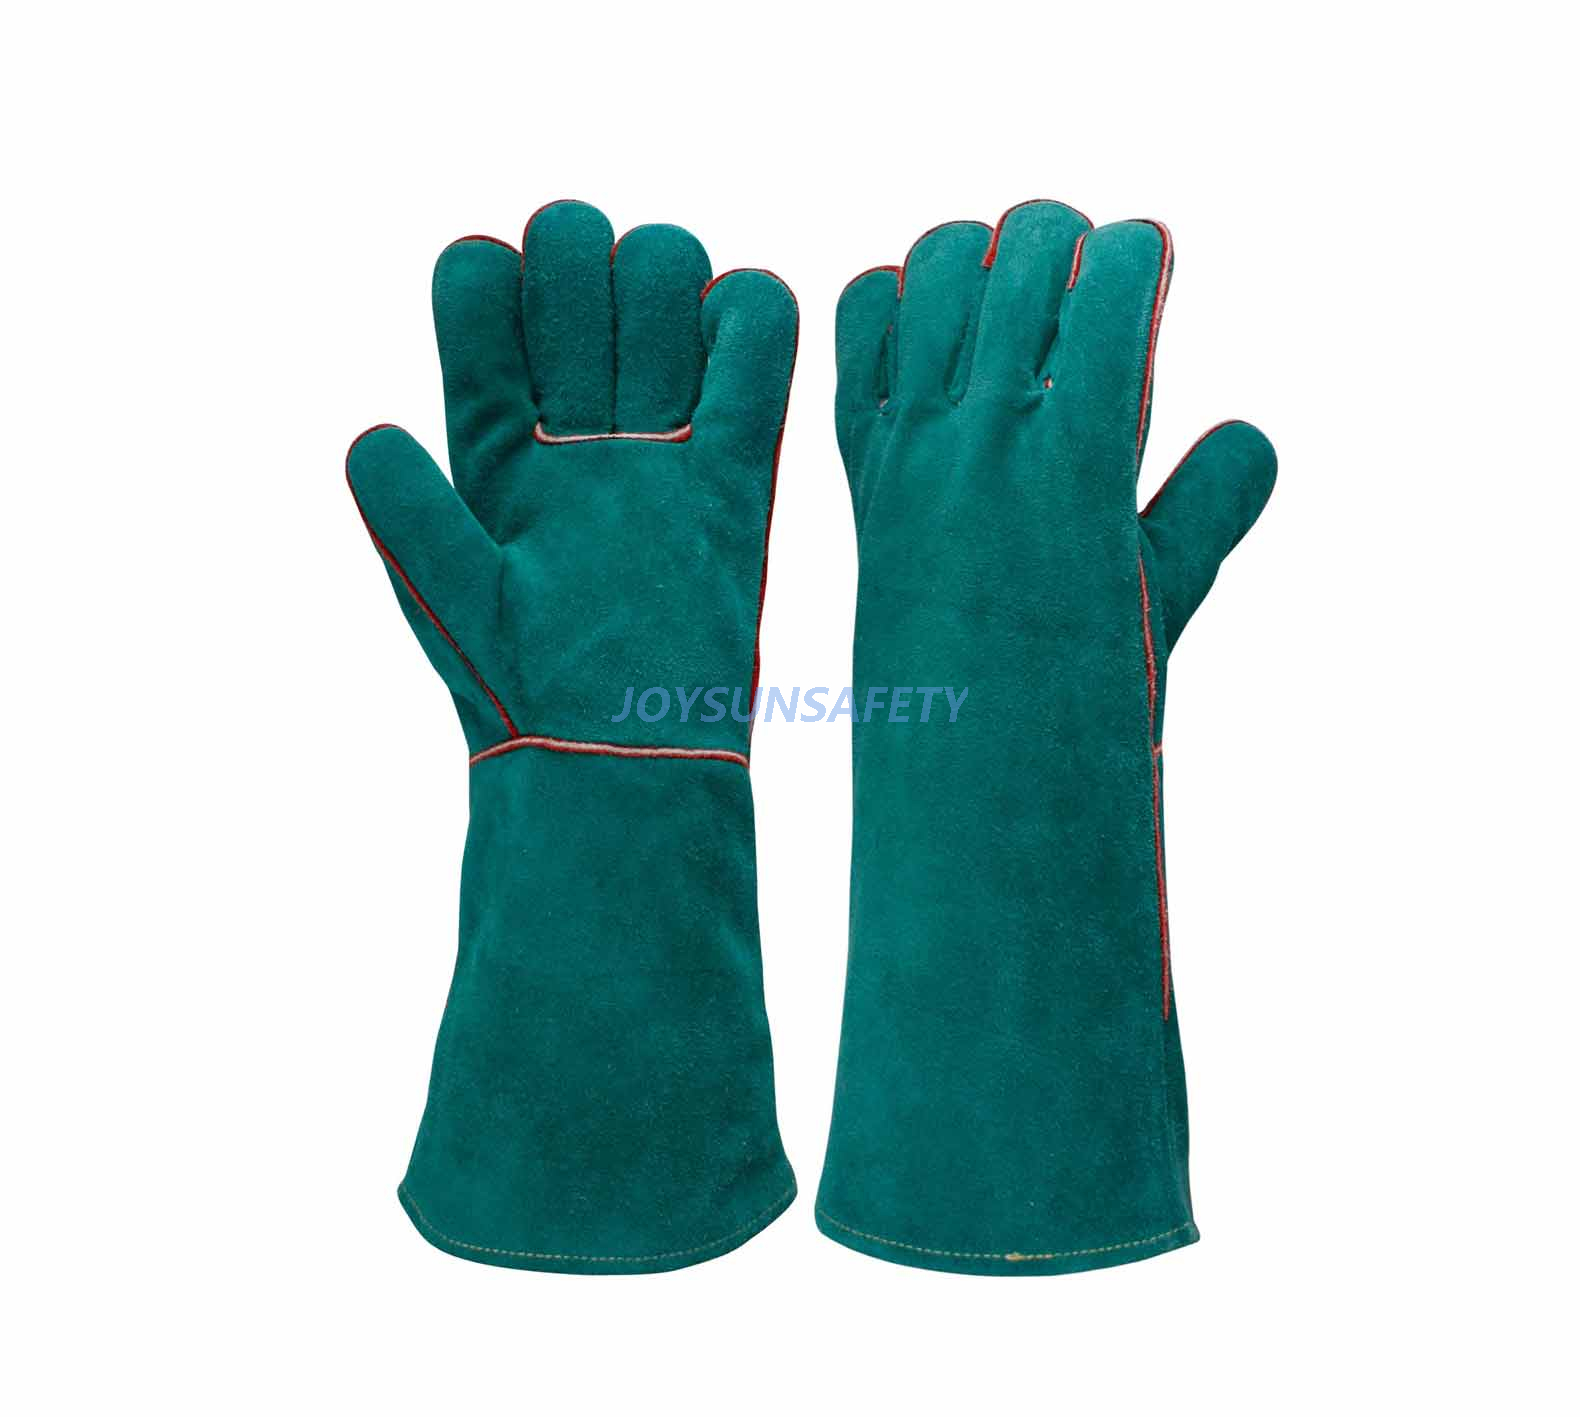 Ordinary Discount Sweat Resistant Gloves - WCBG01 green welding leather gloves  – Joysun